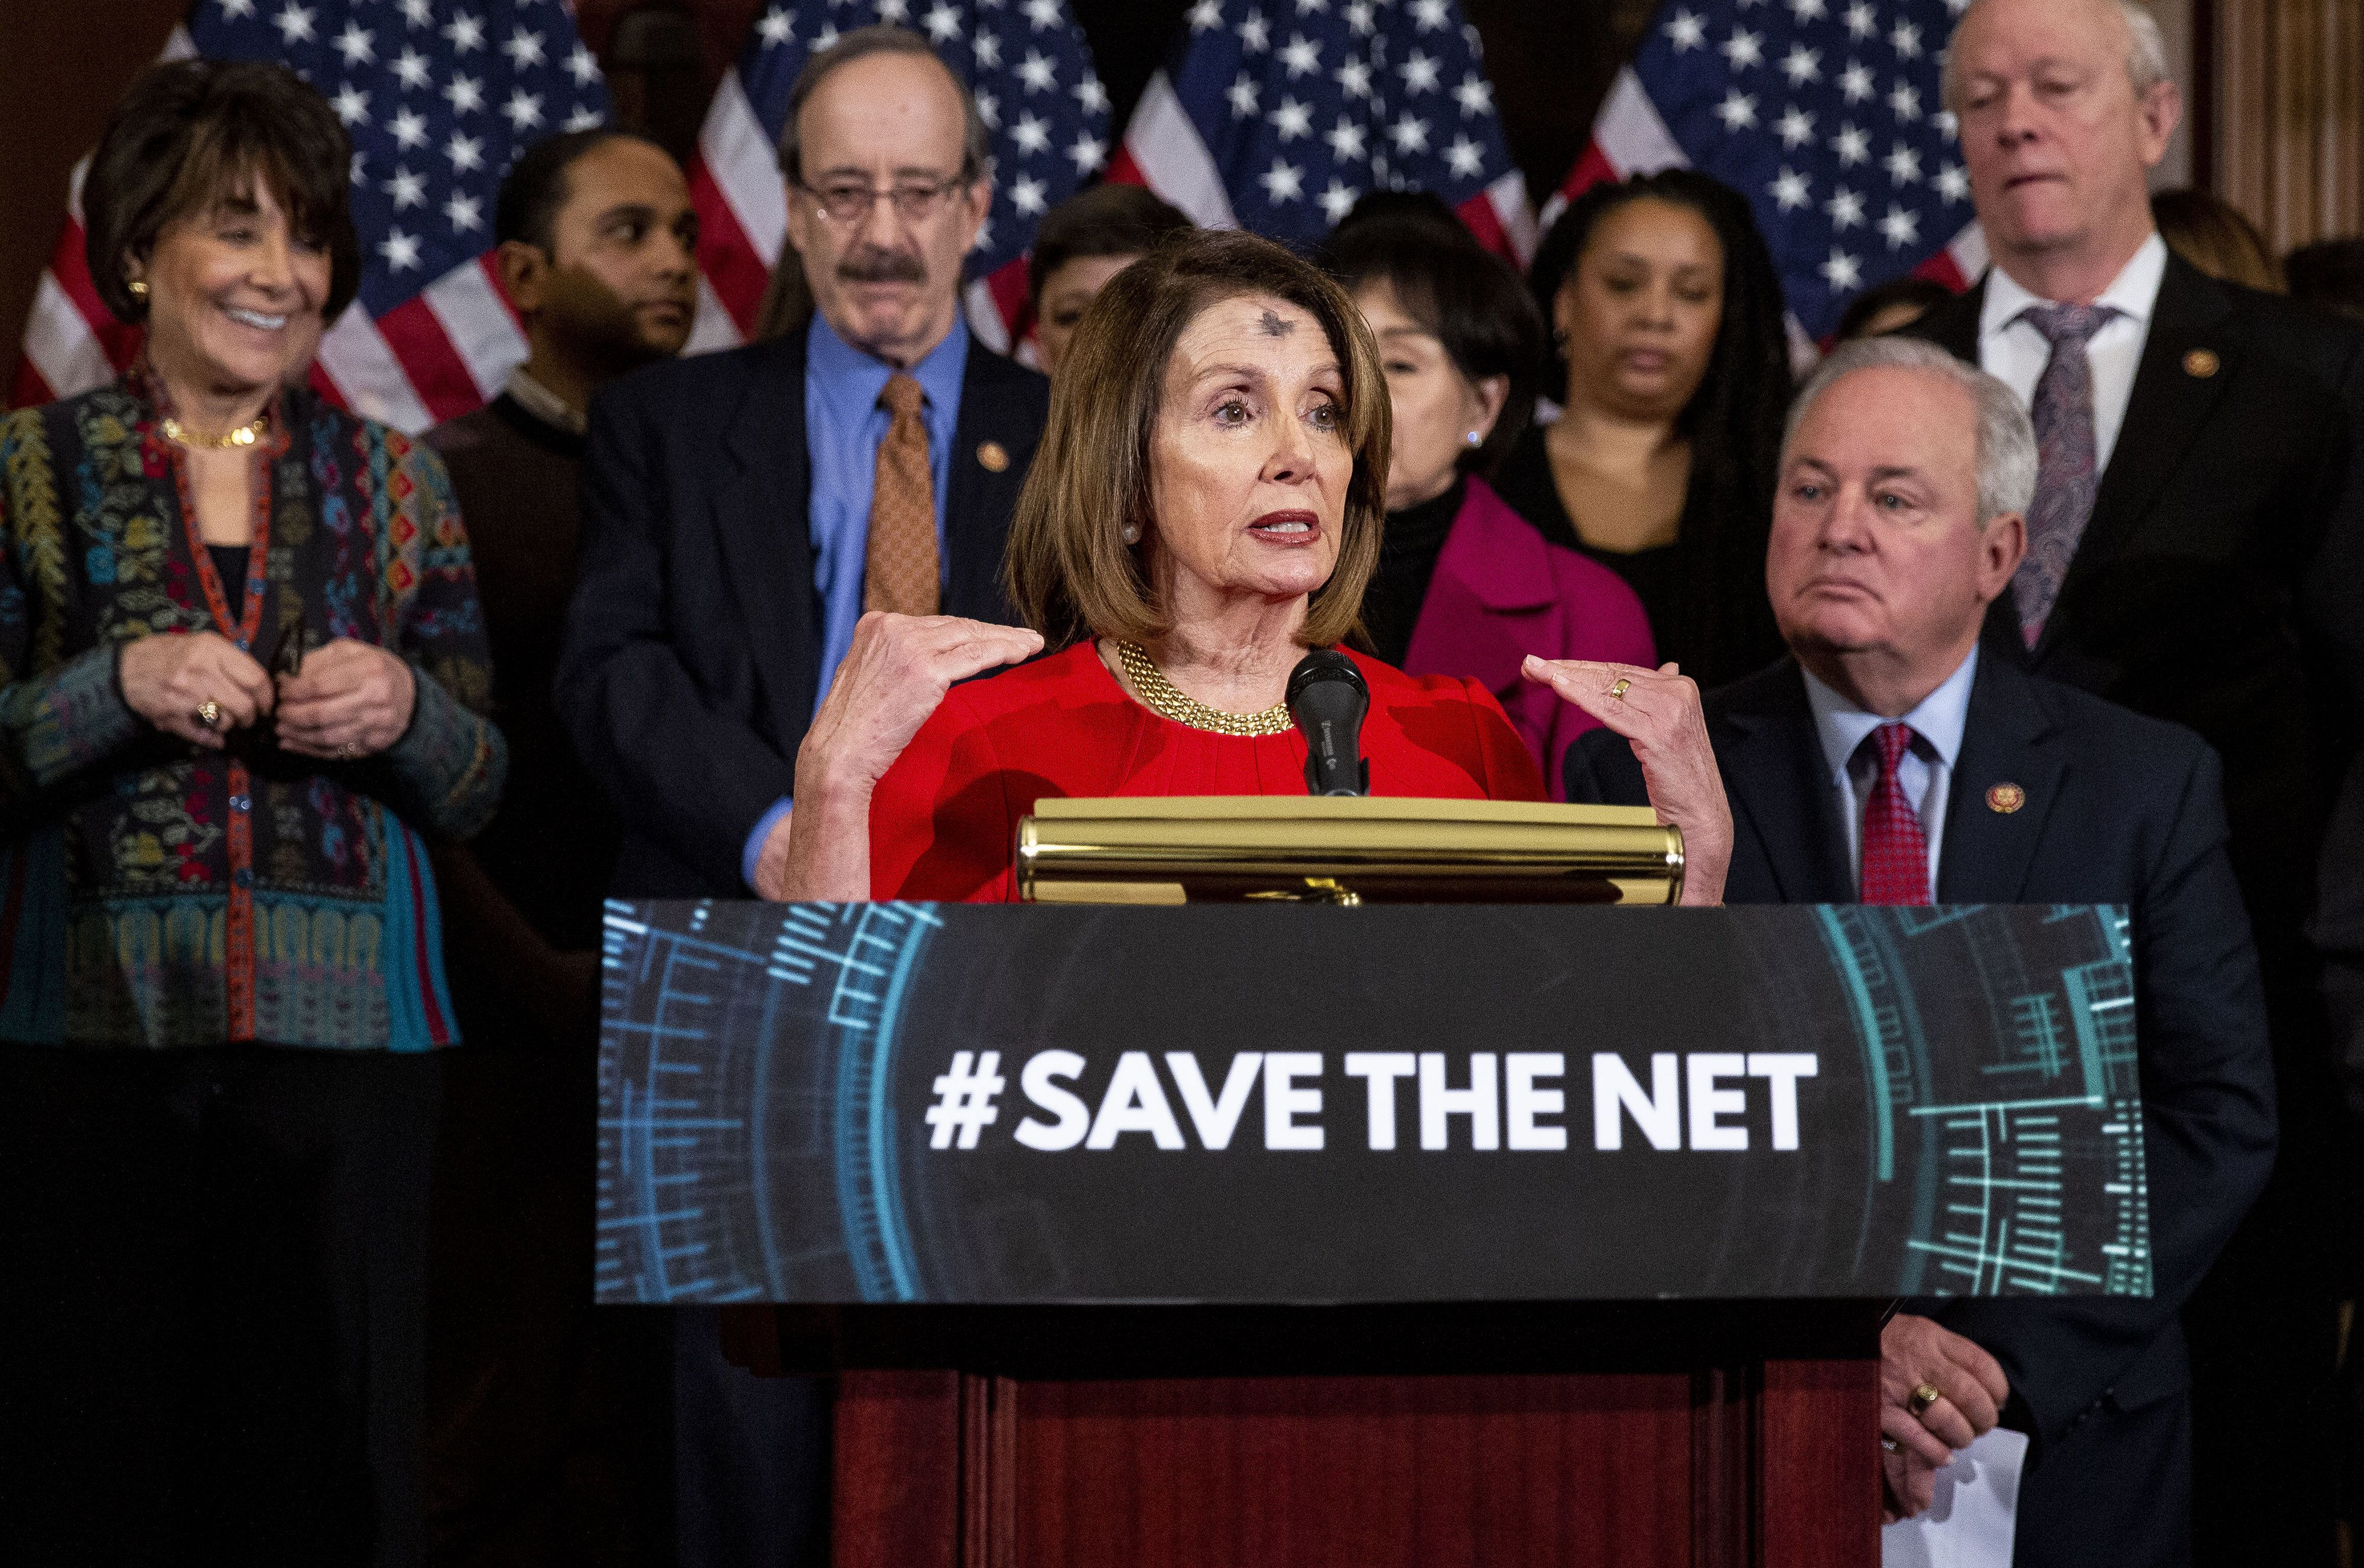 Nancy Pelosi speaks at a March 6 news conference on Democrats' bill to restore Obama-era net neutrality rules eliminated by t